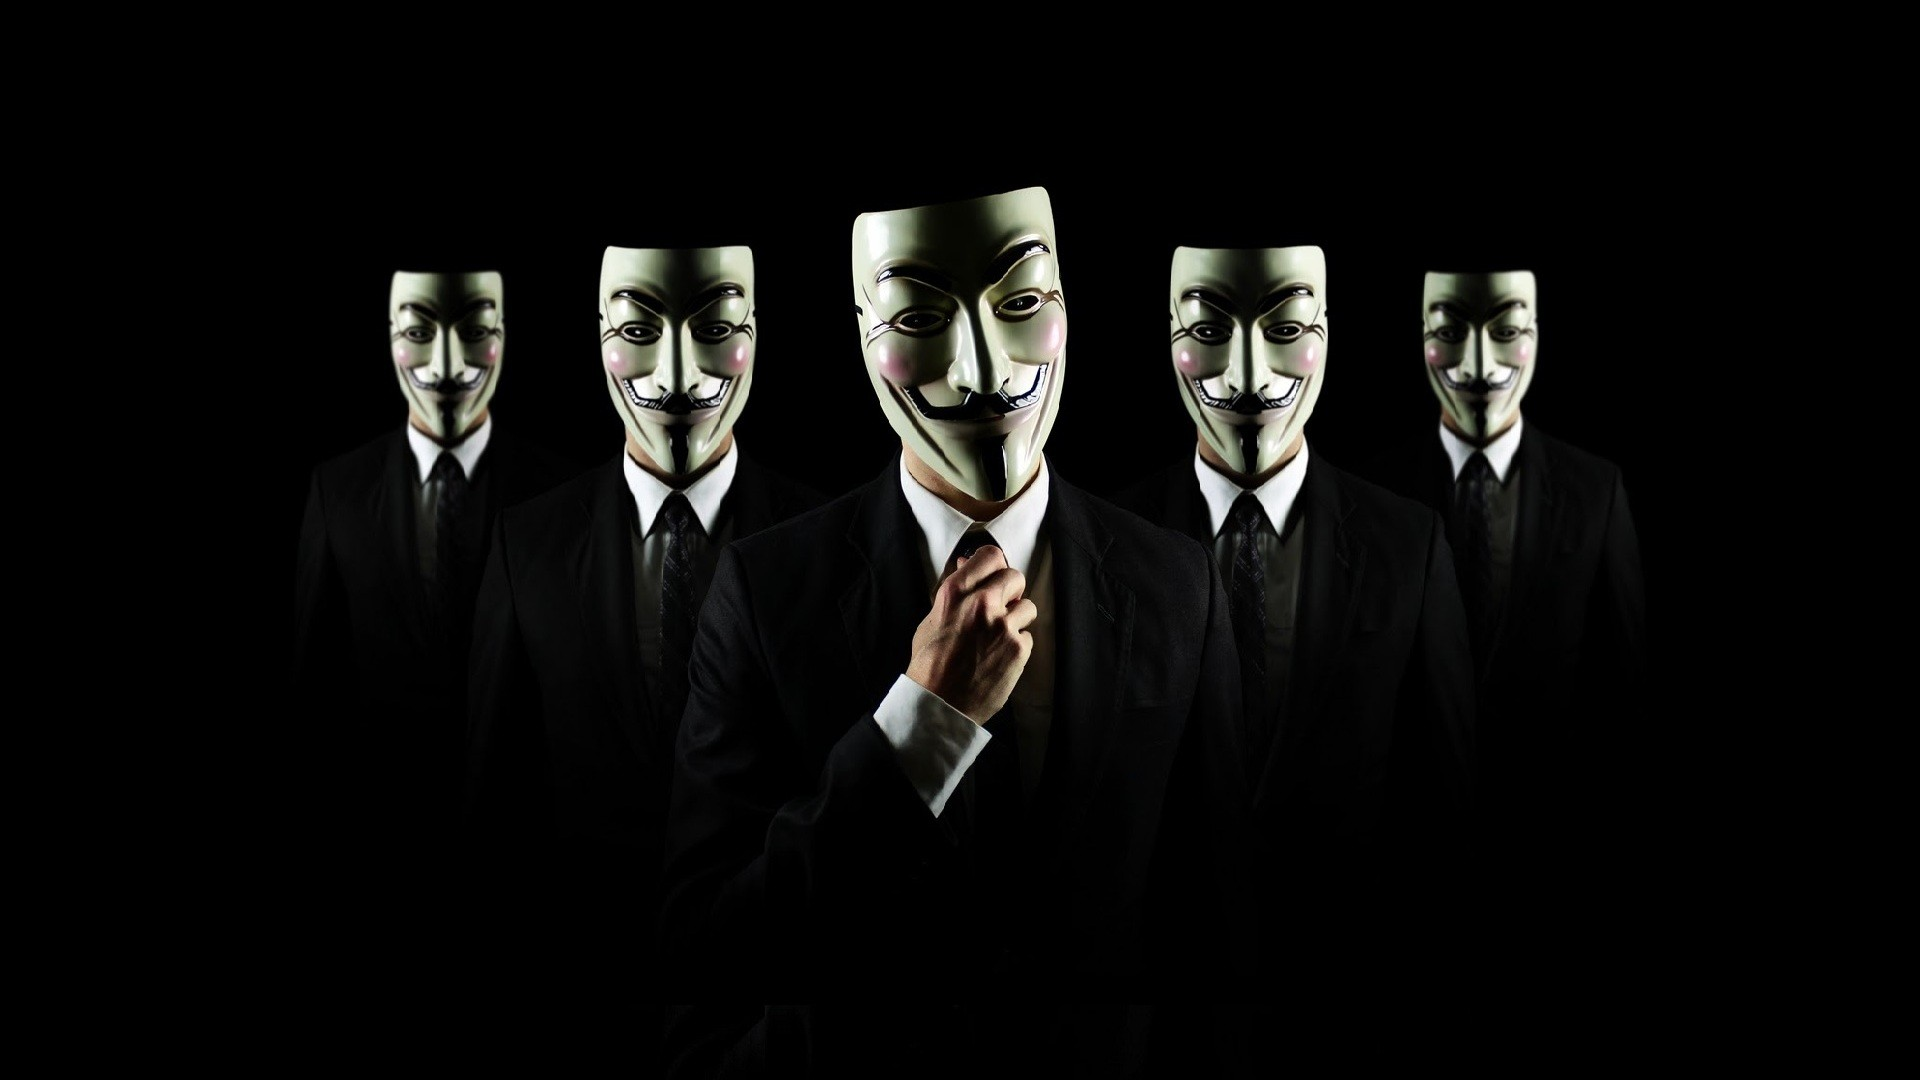 Anonymous-legion-suit-masks-guy-fawkes-hackers-v-for-vendetta-black-background